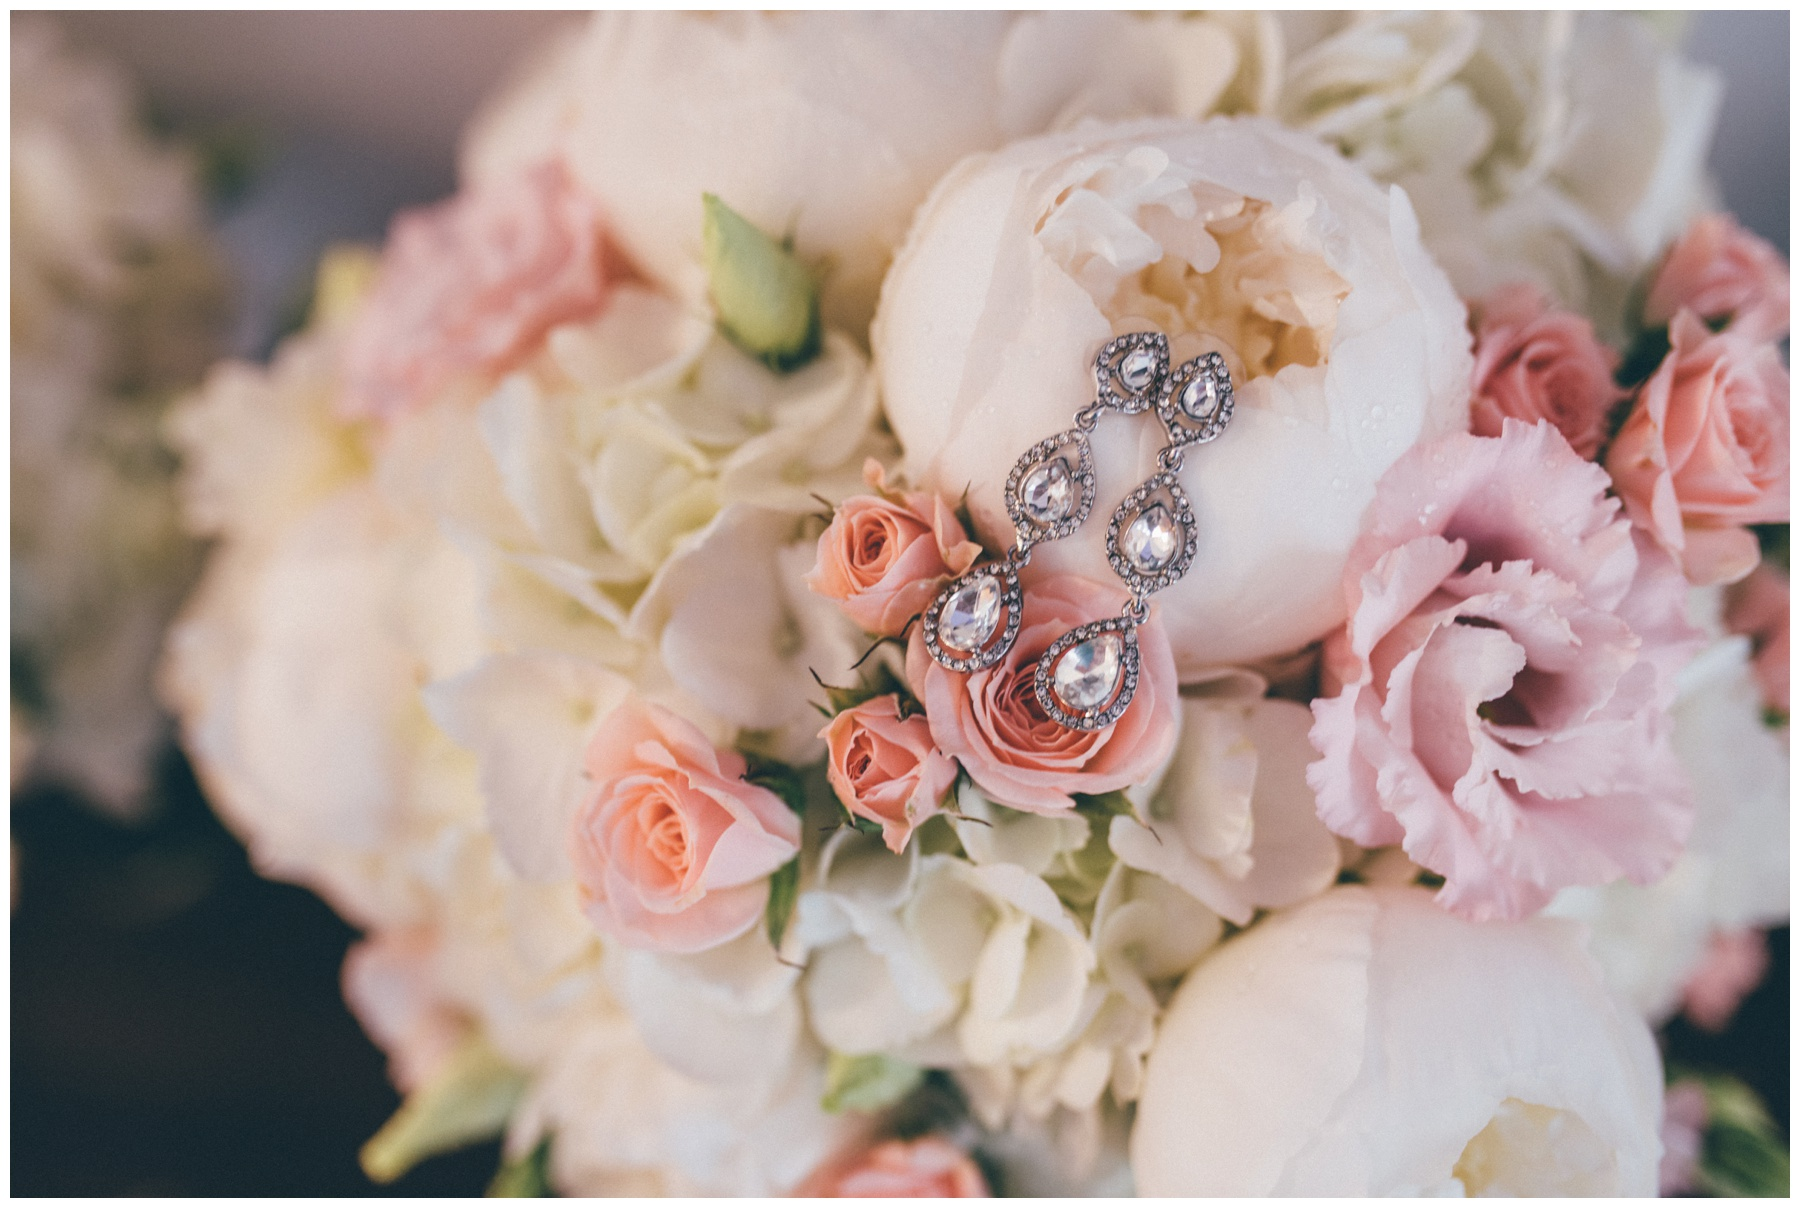 Brides stunning diamond earring against her beautiful wedding bouquet of peonies.